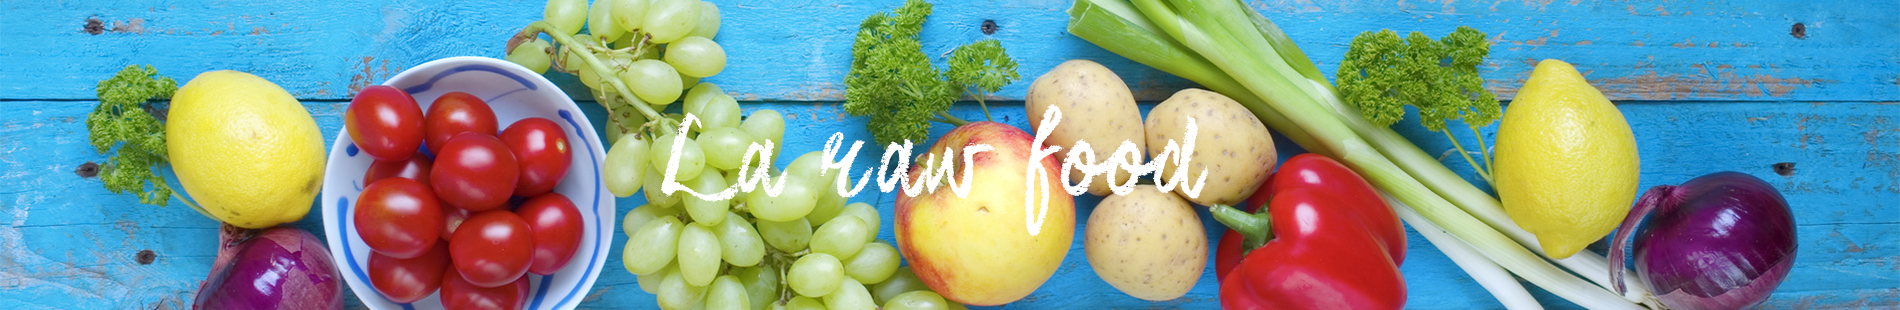 raw-food-header